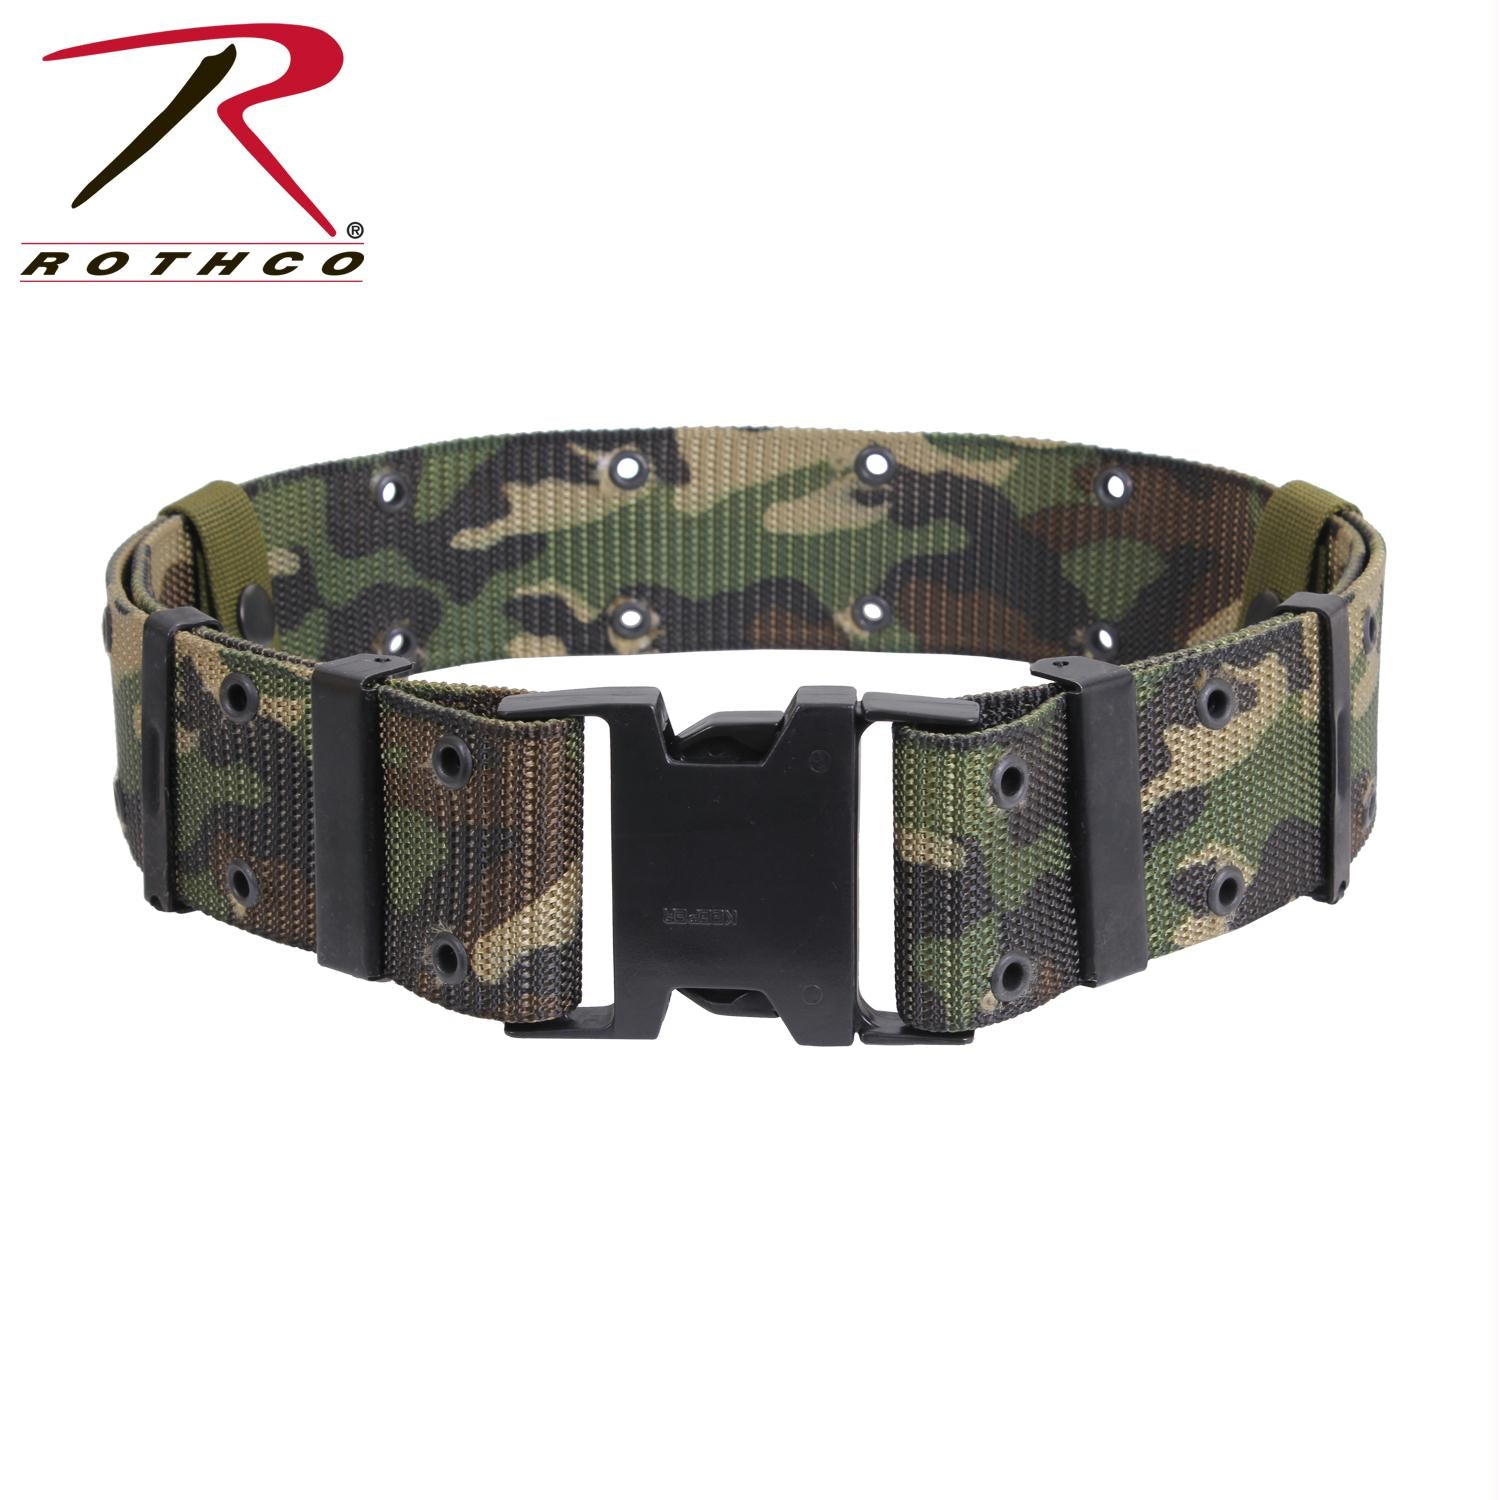 Rothco New Issue Marine Corps Style Quick Release Pistol Belts - Woodland Camo / L